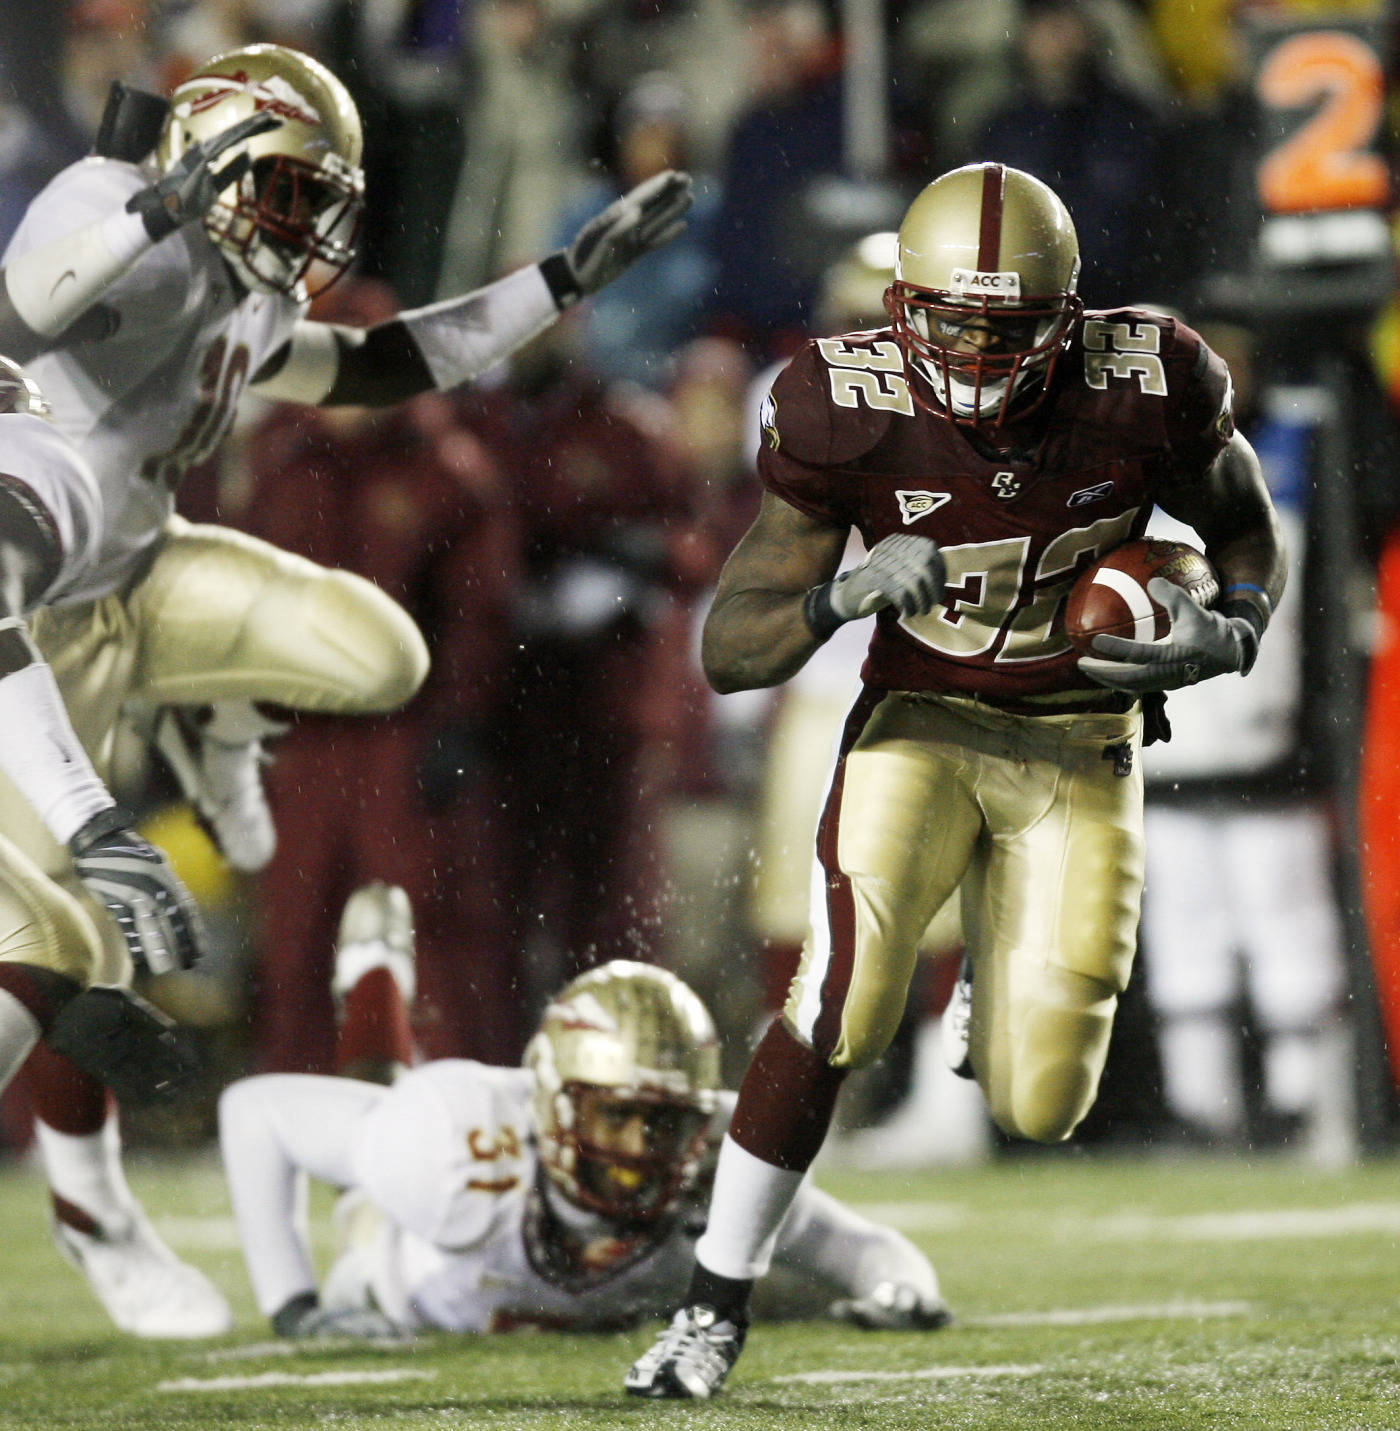 Boston College's Andre Callender (32) runs past Florida State's Toddrick Verdell (31) and Eugene Hayes (10) during the first half of a college football game in Boston Saturday, Nov. 3, 2007. (AP Photo/Winslow Townson)